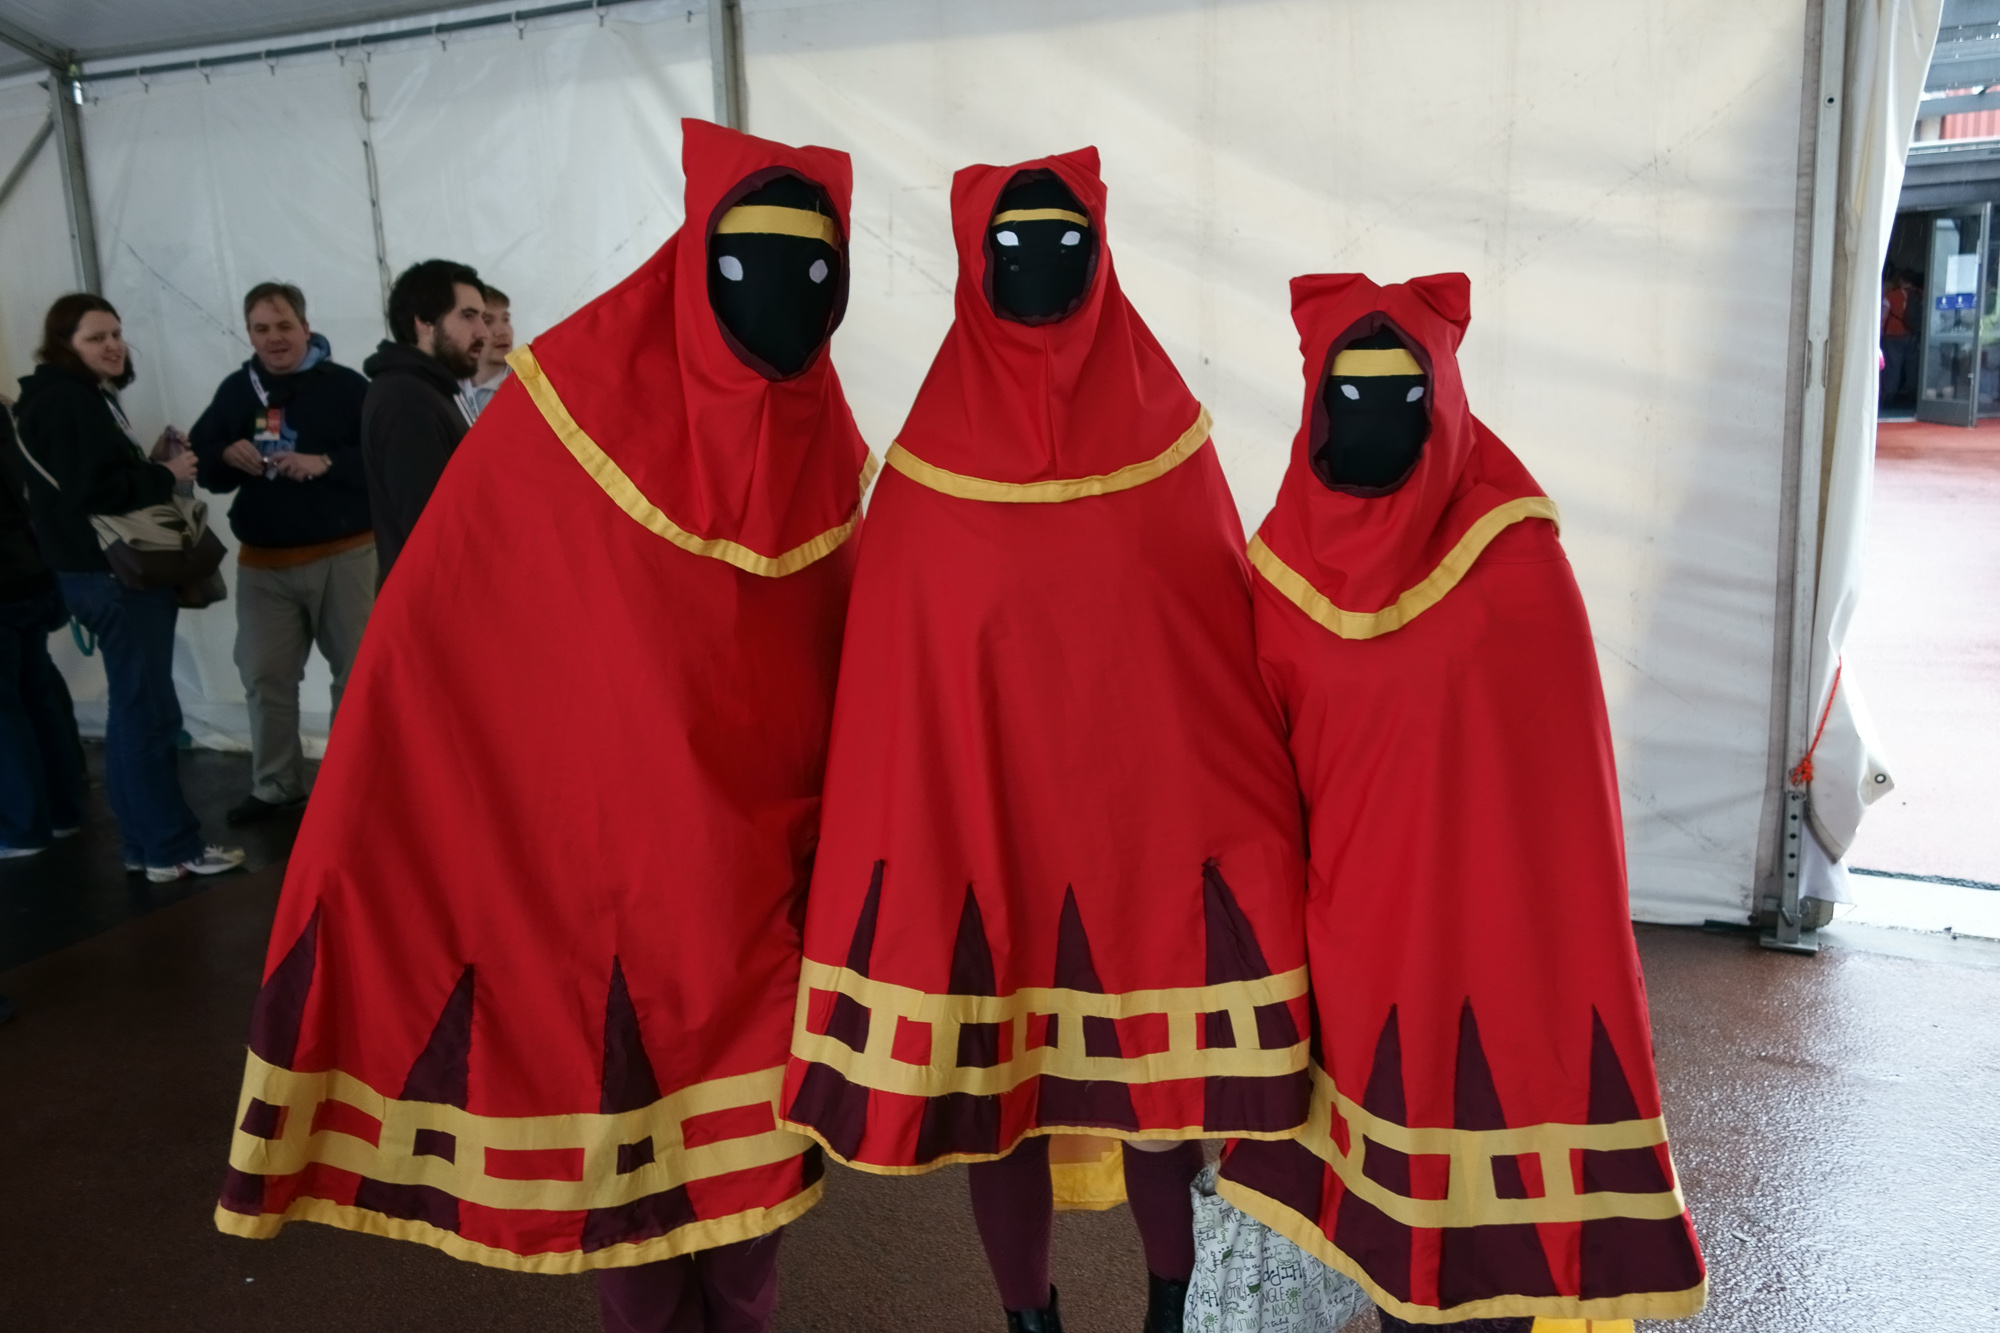 These Journey dudes were everywhere at PAX Aus, but I managed to grab a photo of a group of three. Which reminds me, I have a PS3 now, so I should probably play Journey...